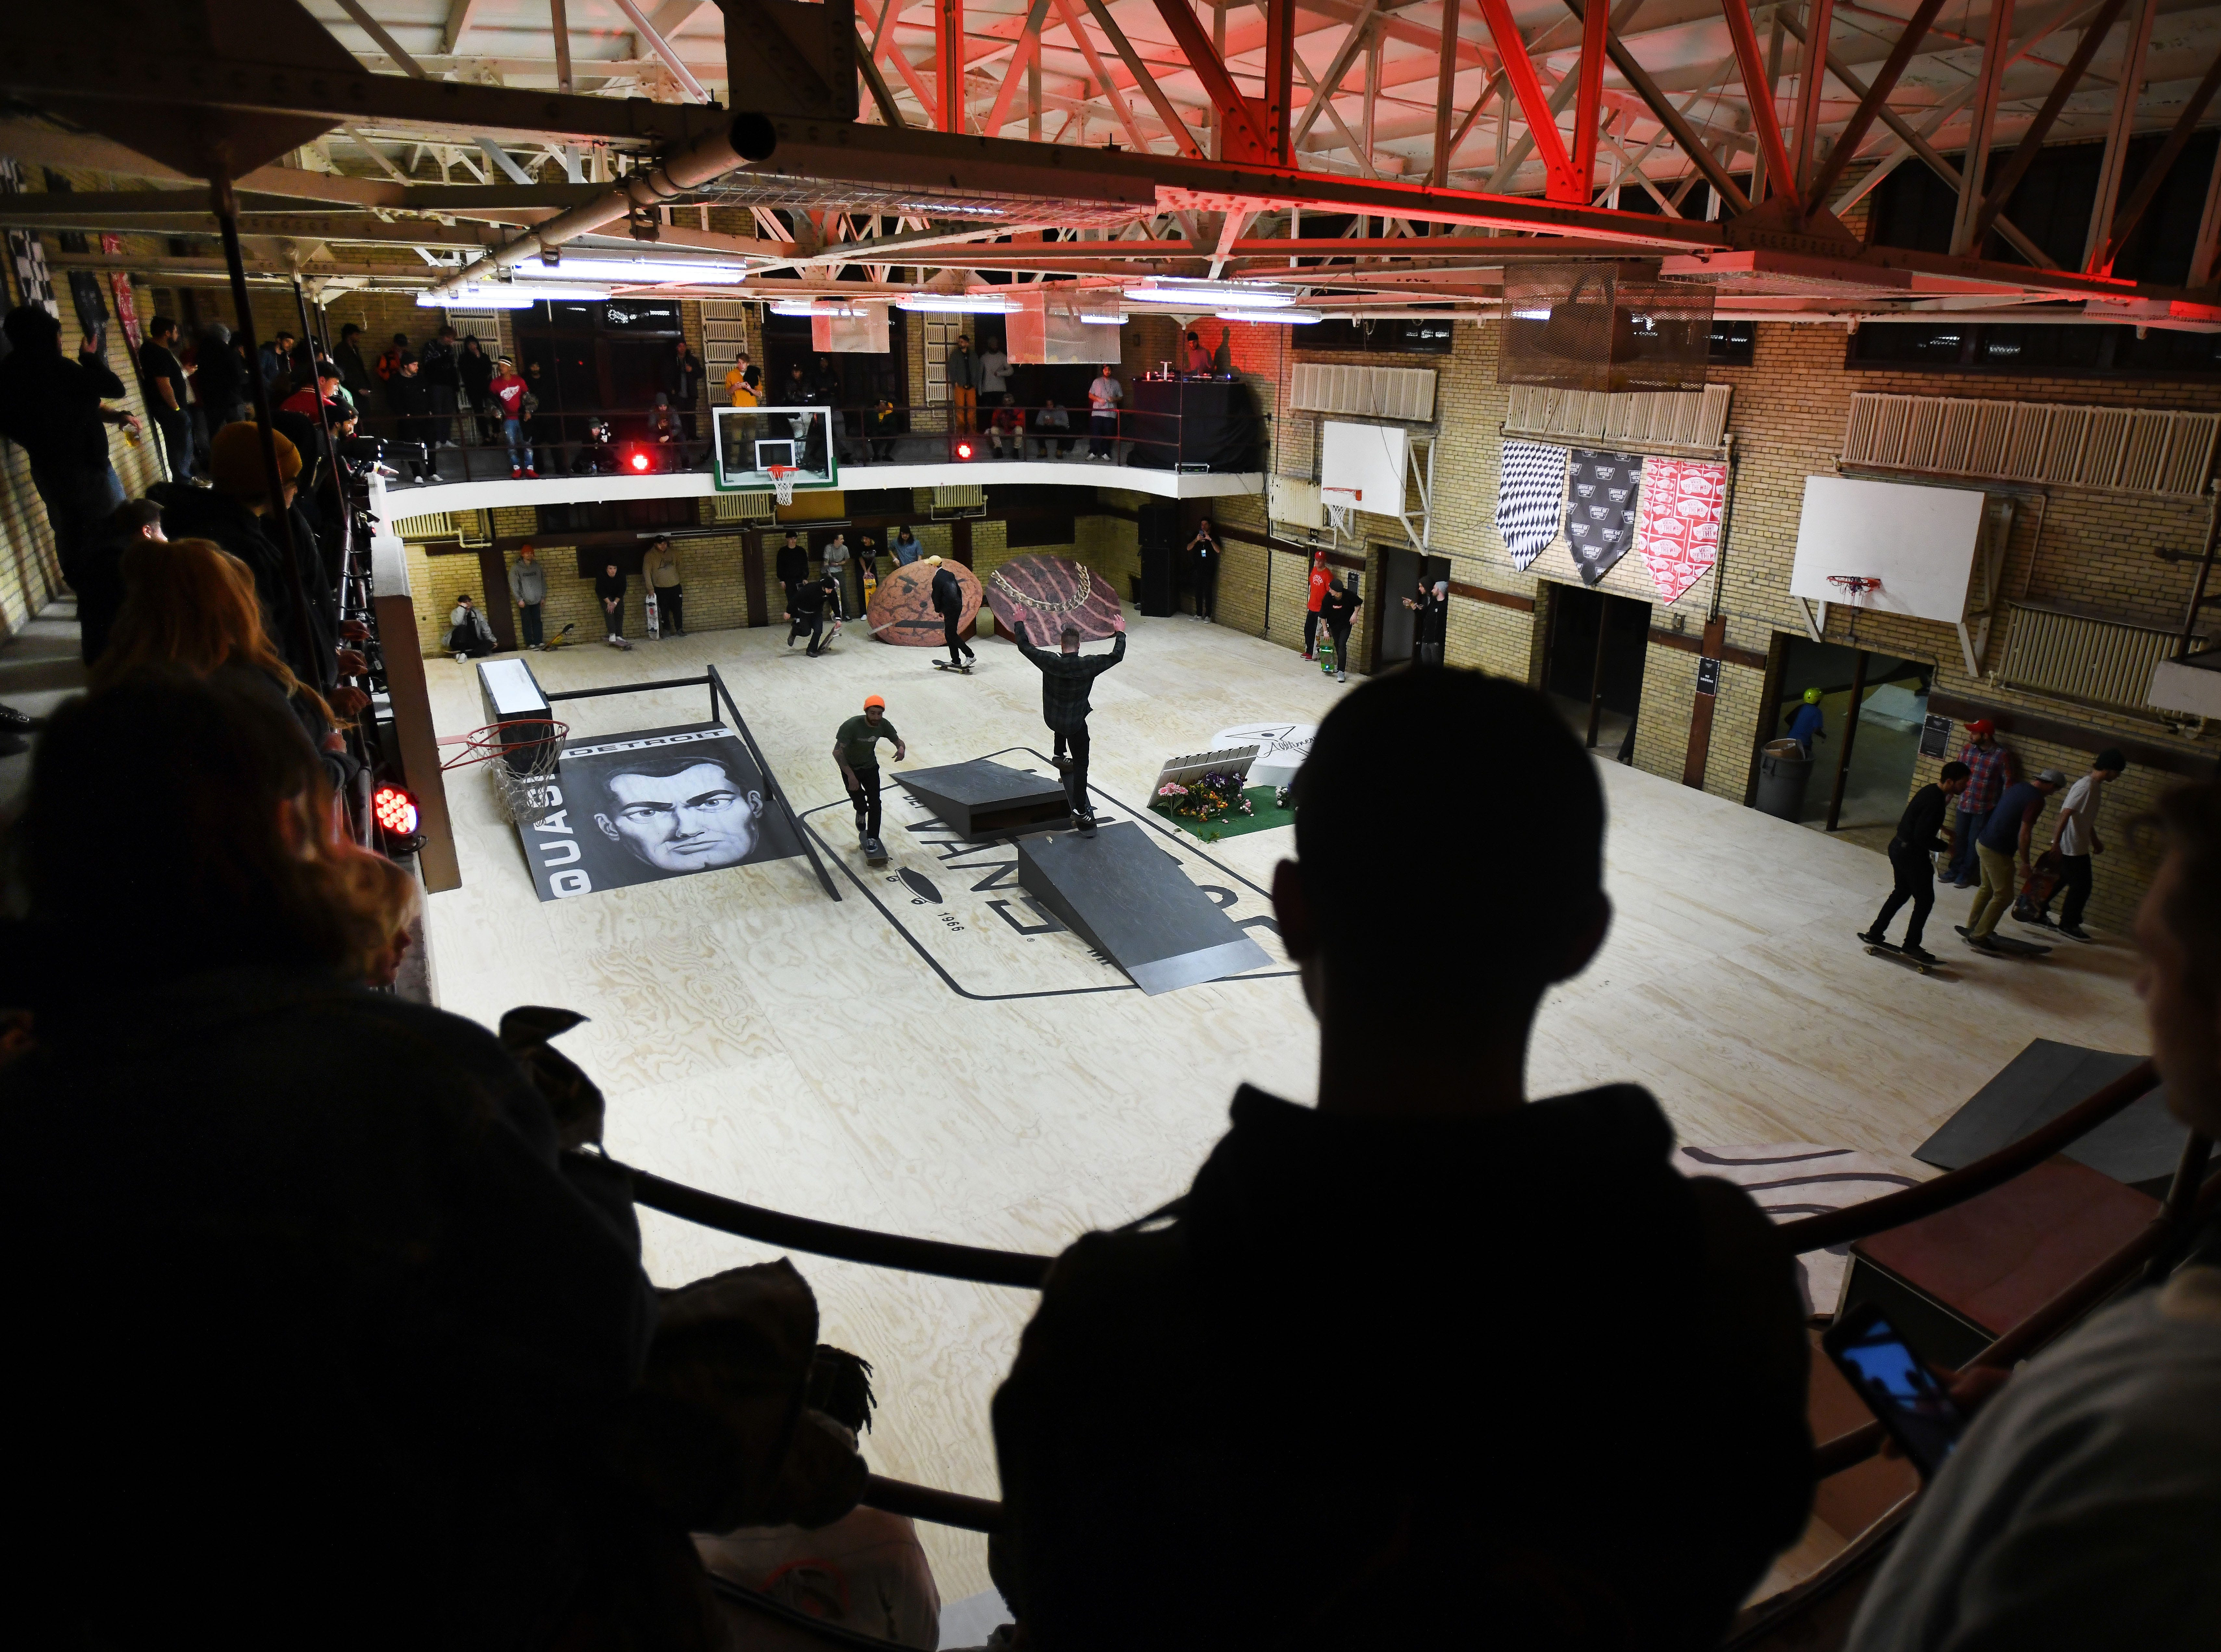 A skate park at the House of Vans pop-up at Jefferson school.